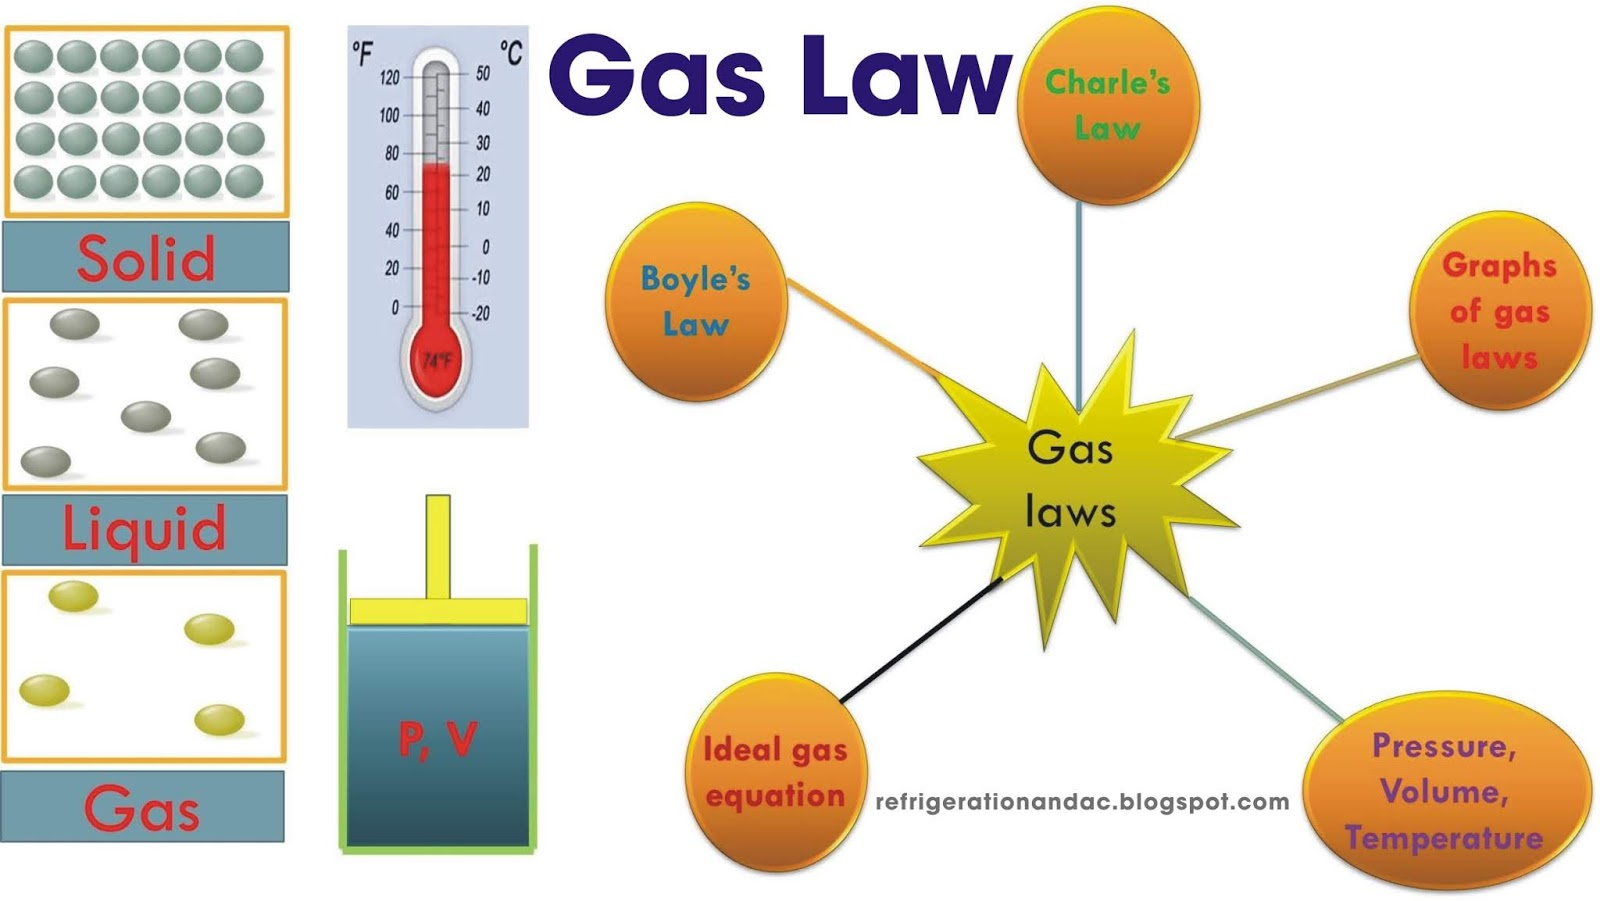 Gas Law Refrigeration And Air Conditioning